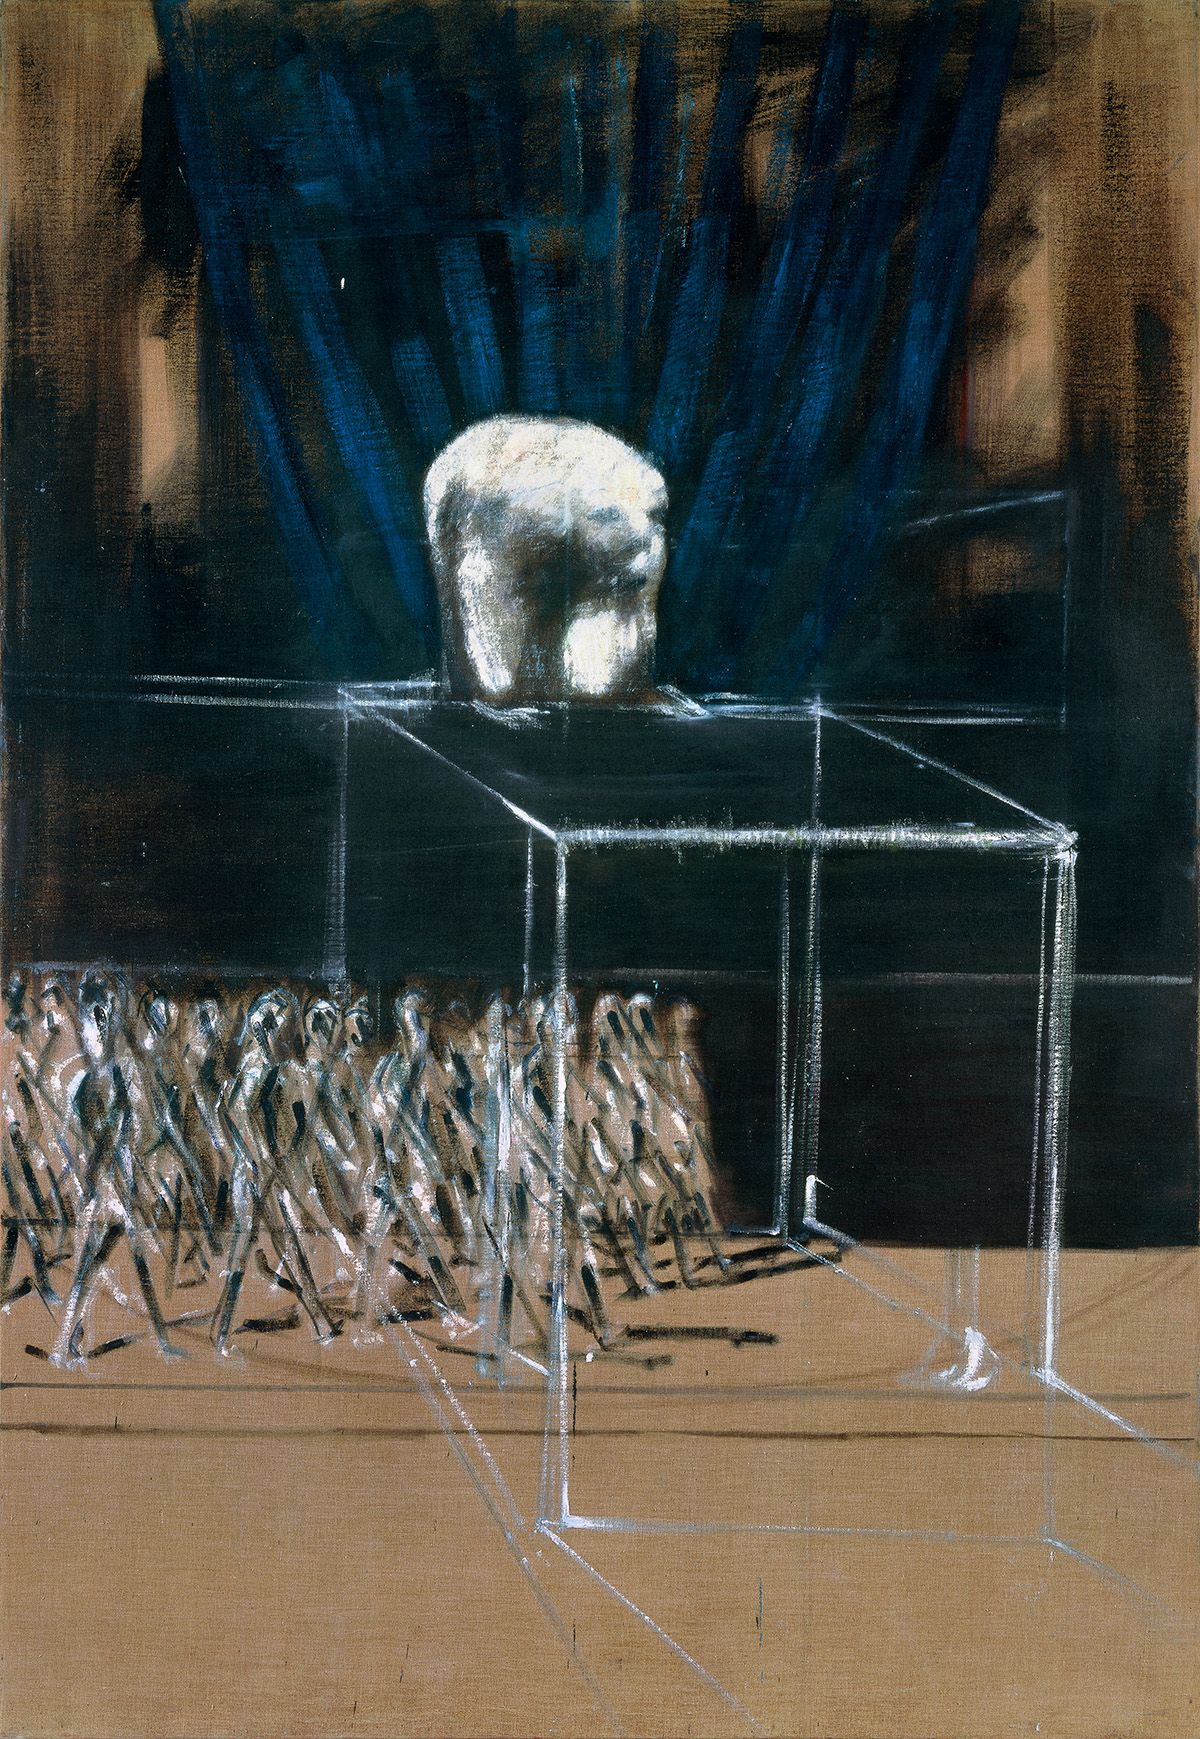 Francis Bacon, 'Marching Figures', 1952. Oil on canvas. CR number 52-22. © The Estate of Francis Bacon / DACS London 2020. All rights reserved.